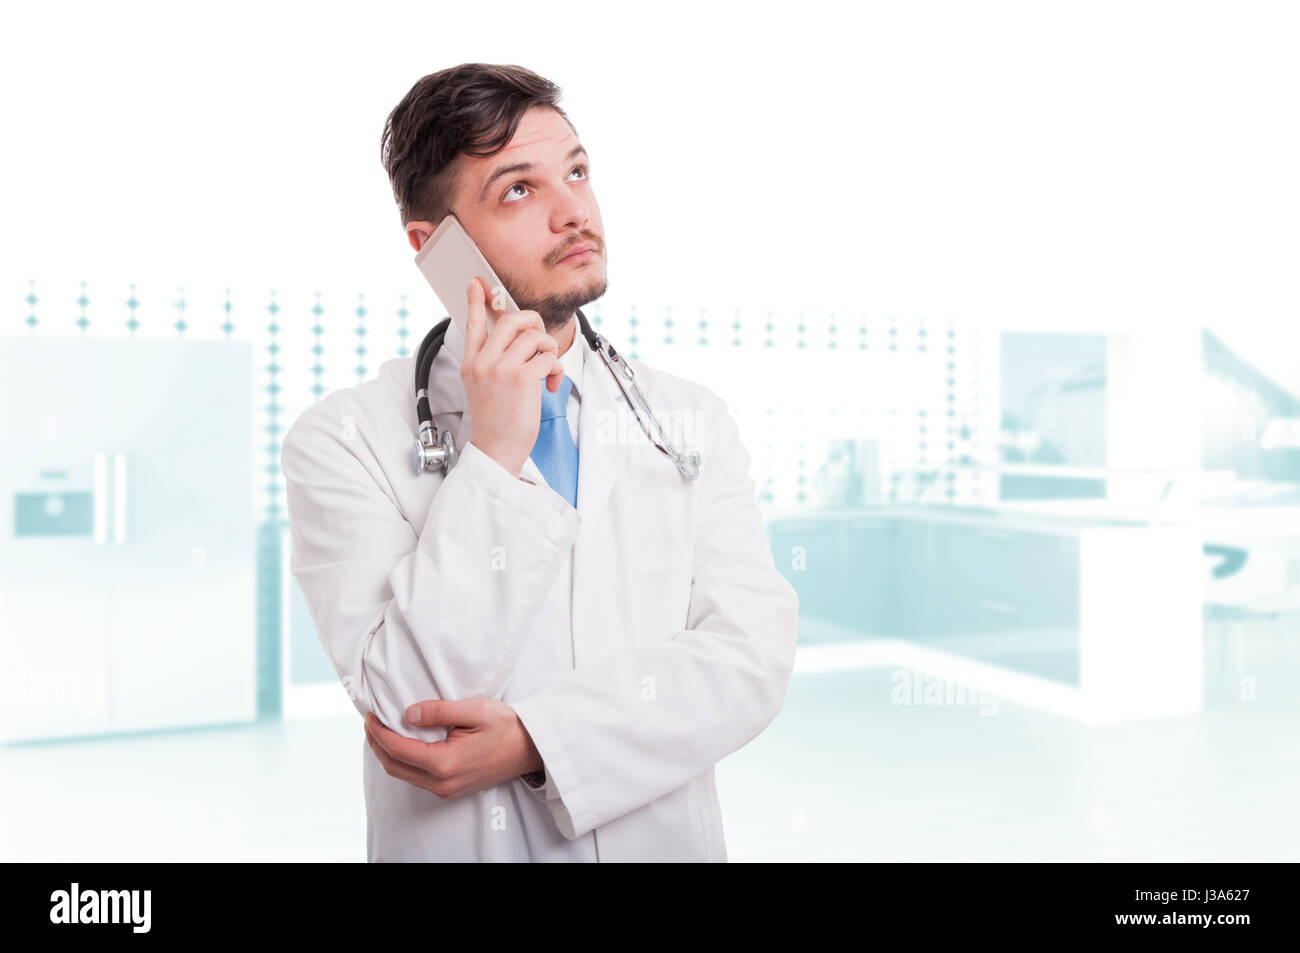 Professional doctor or medic talking on mobile phone in the hospital - Stock Image